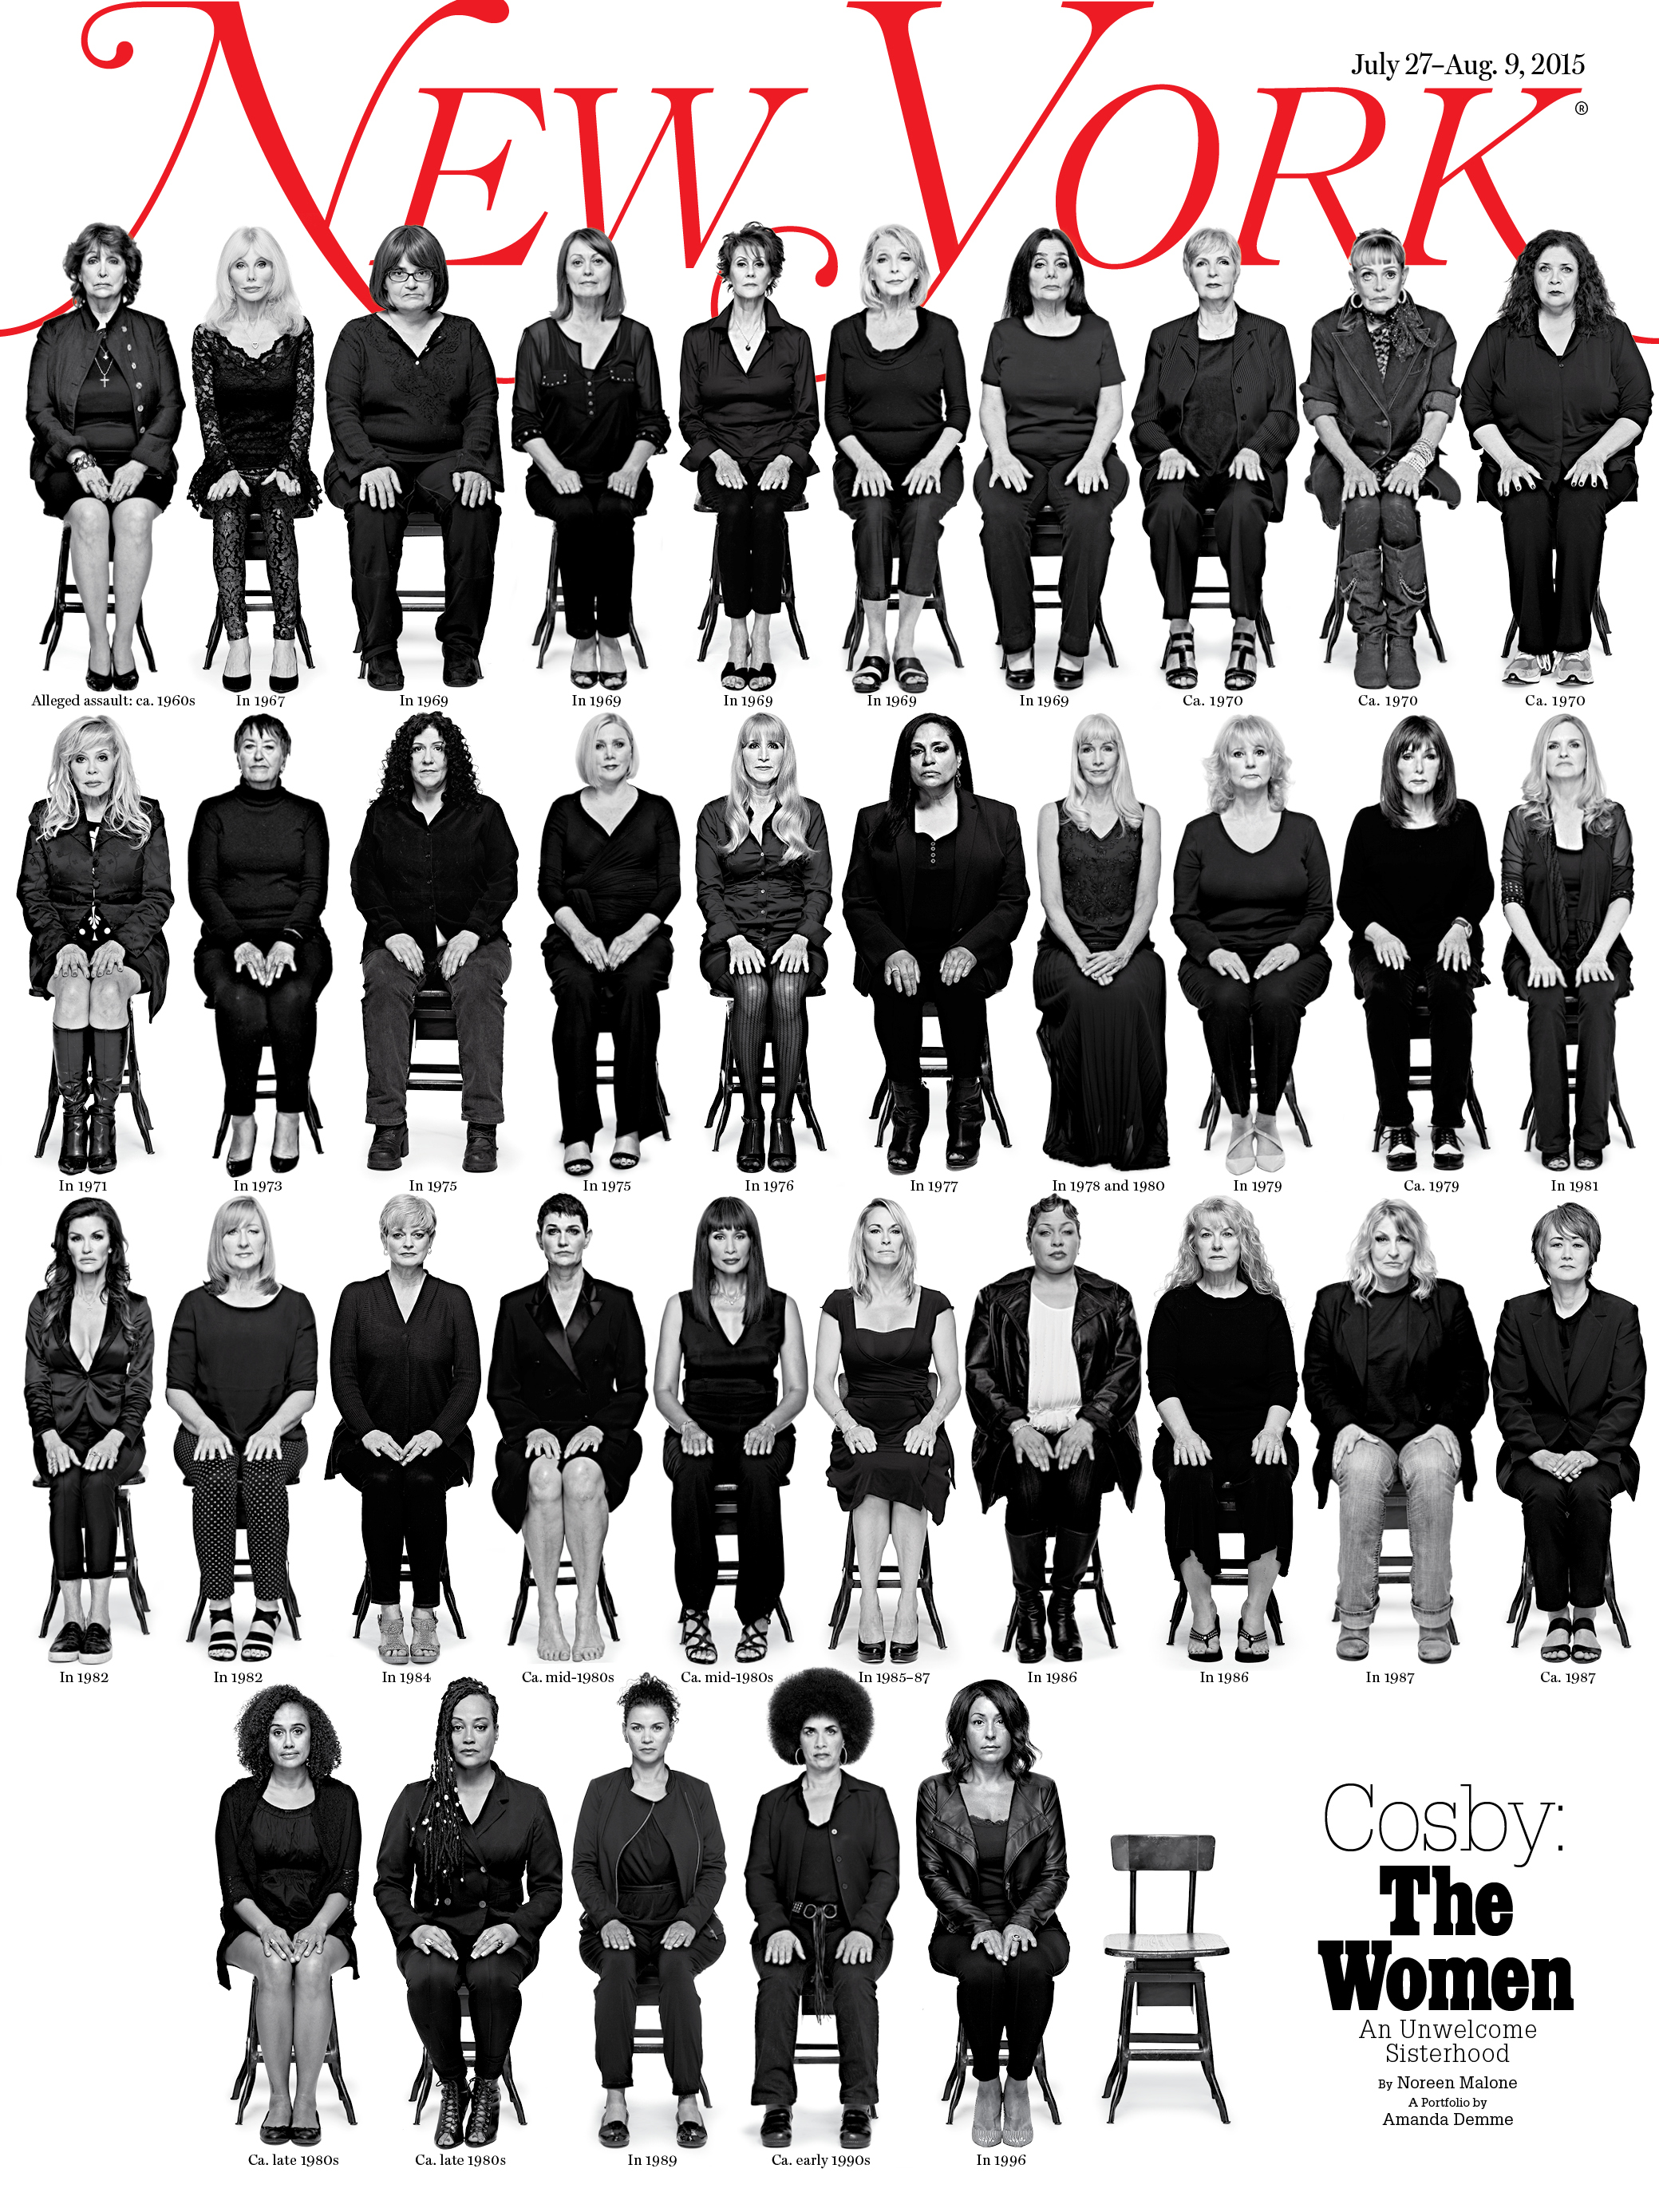 Magazine site offline after publishing cover of 35 Cosby accusers